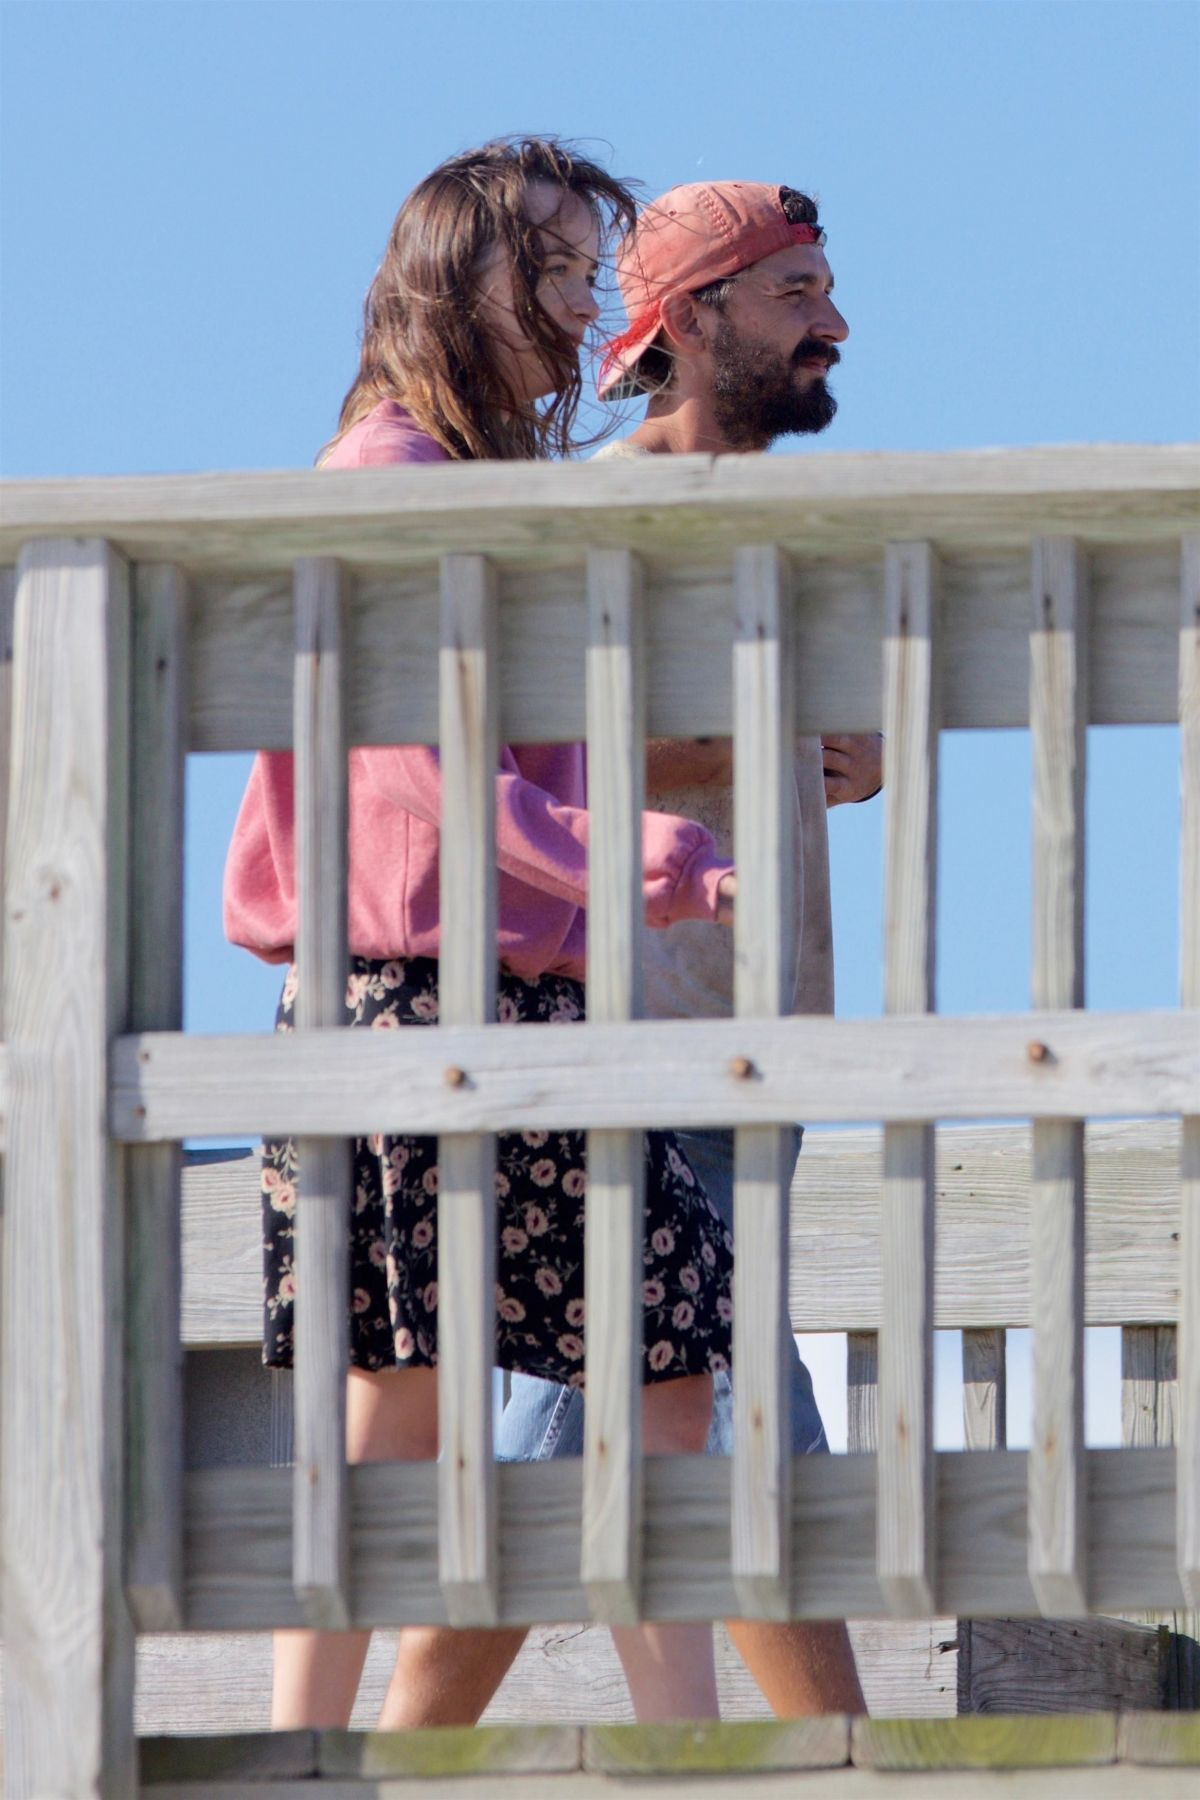 DAKOTA JOHNSON and Shia Labeouf on the Set of The Peanut Butter Falcon in Savannah 07/31/2017